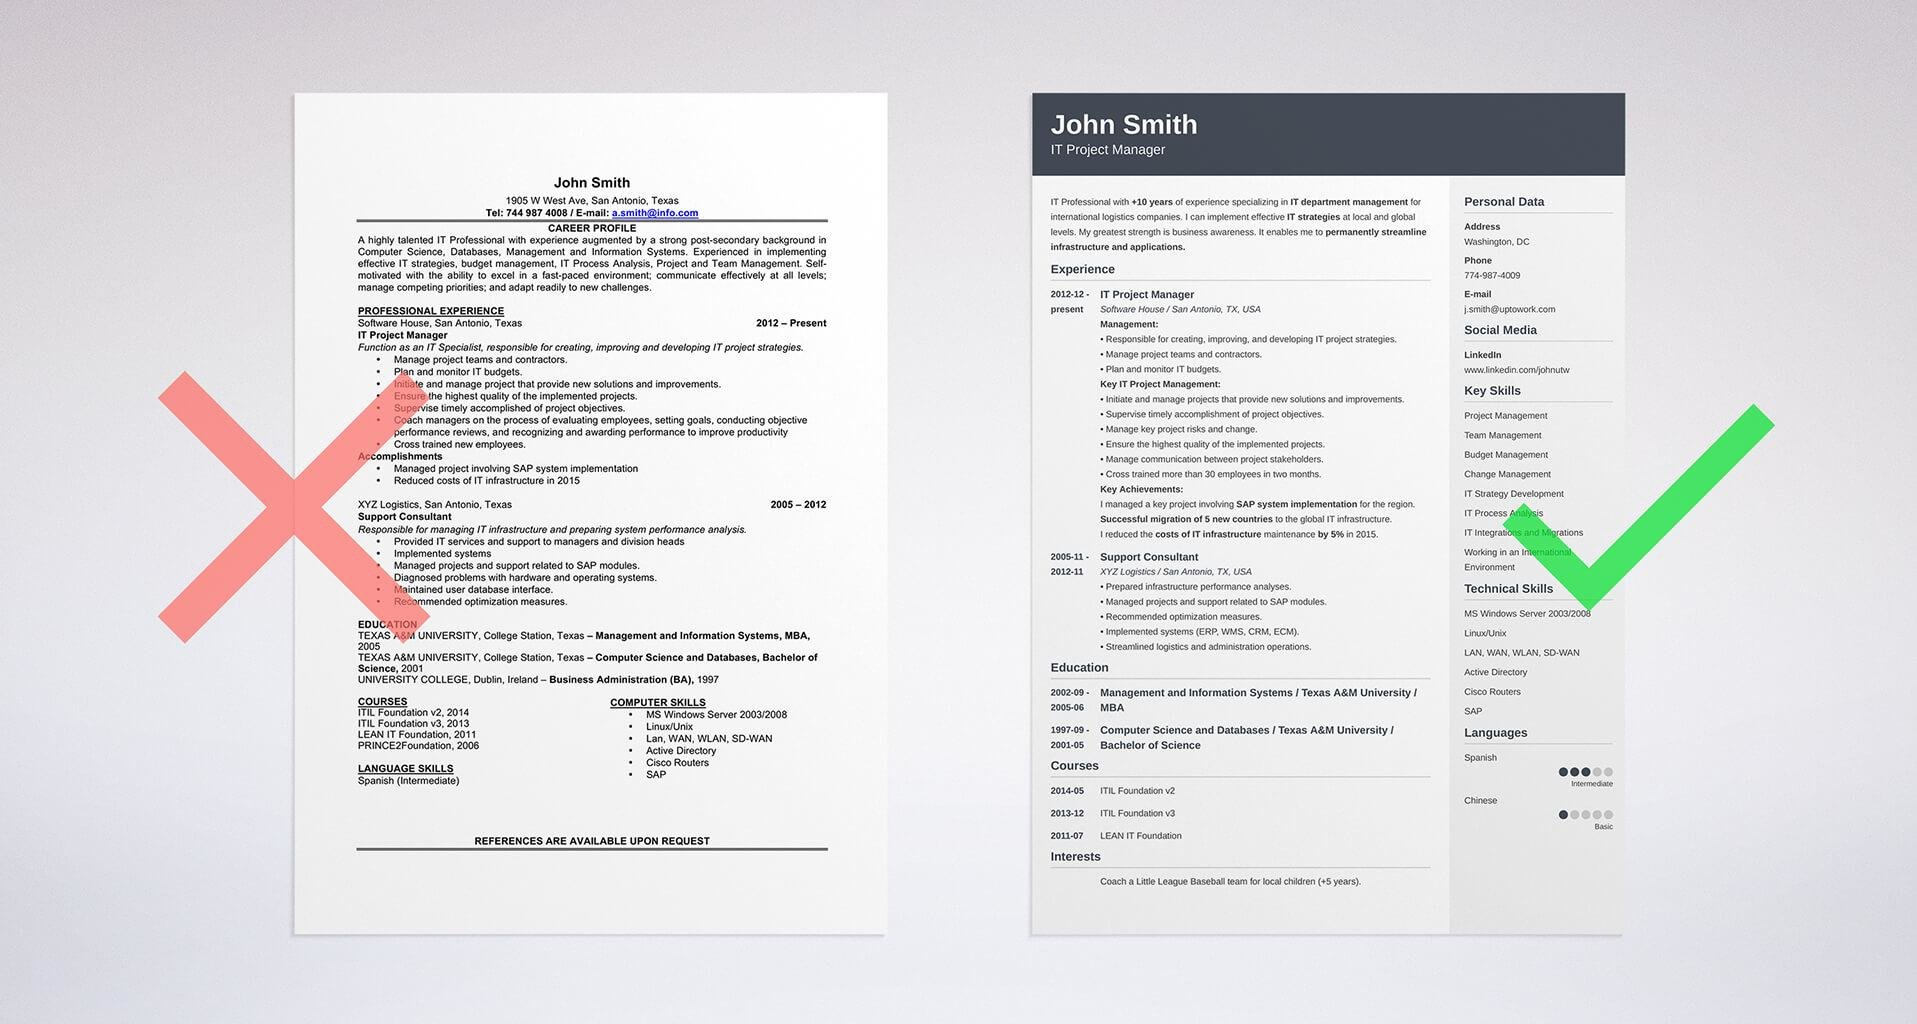 resume formats pick the best one in 3 steps examples templates - Resumes Formats